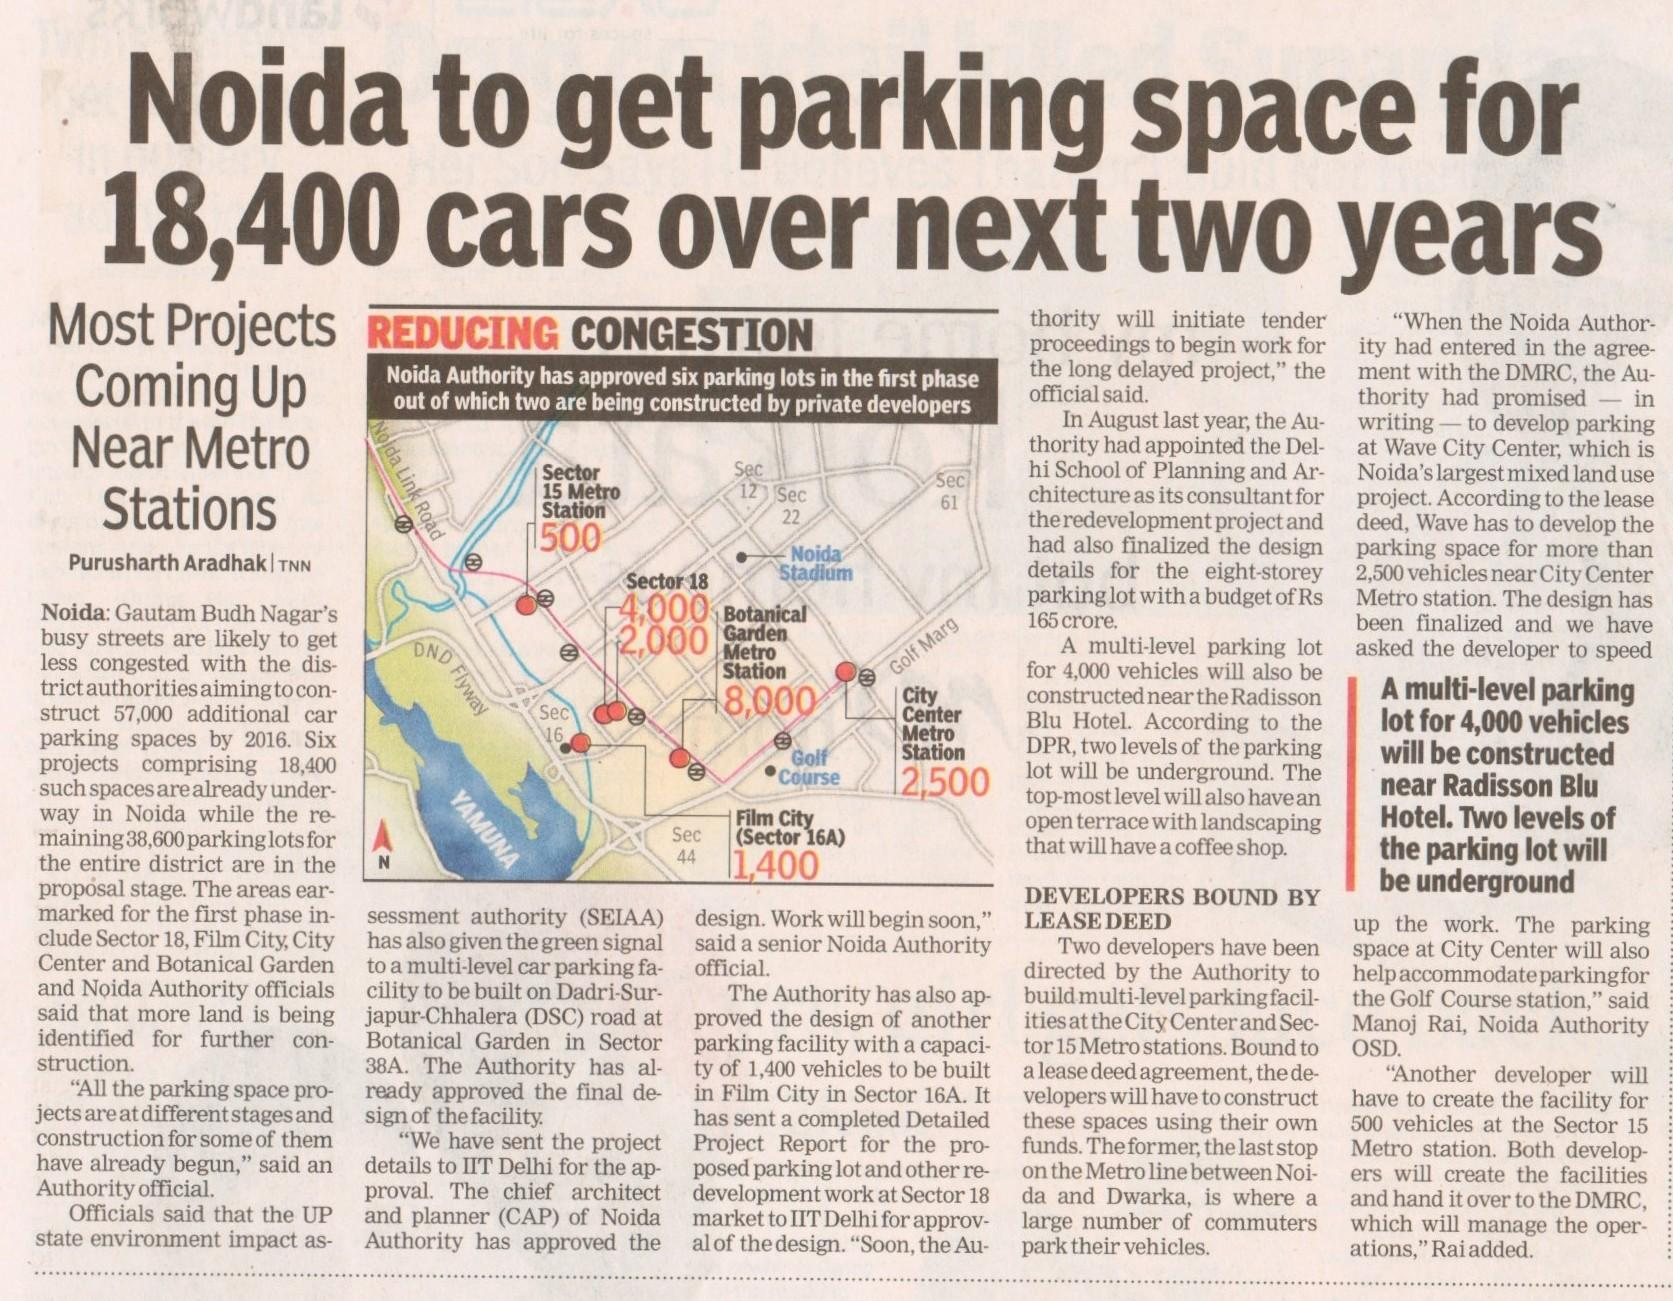 Noida to get parking space for 18,400 cars over next two years